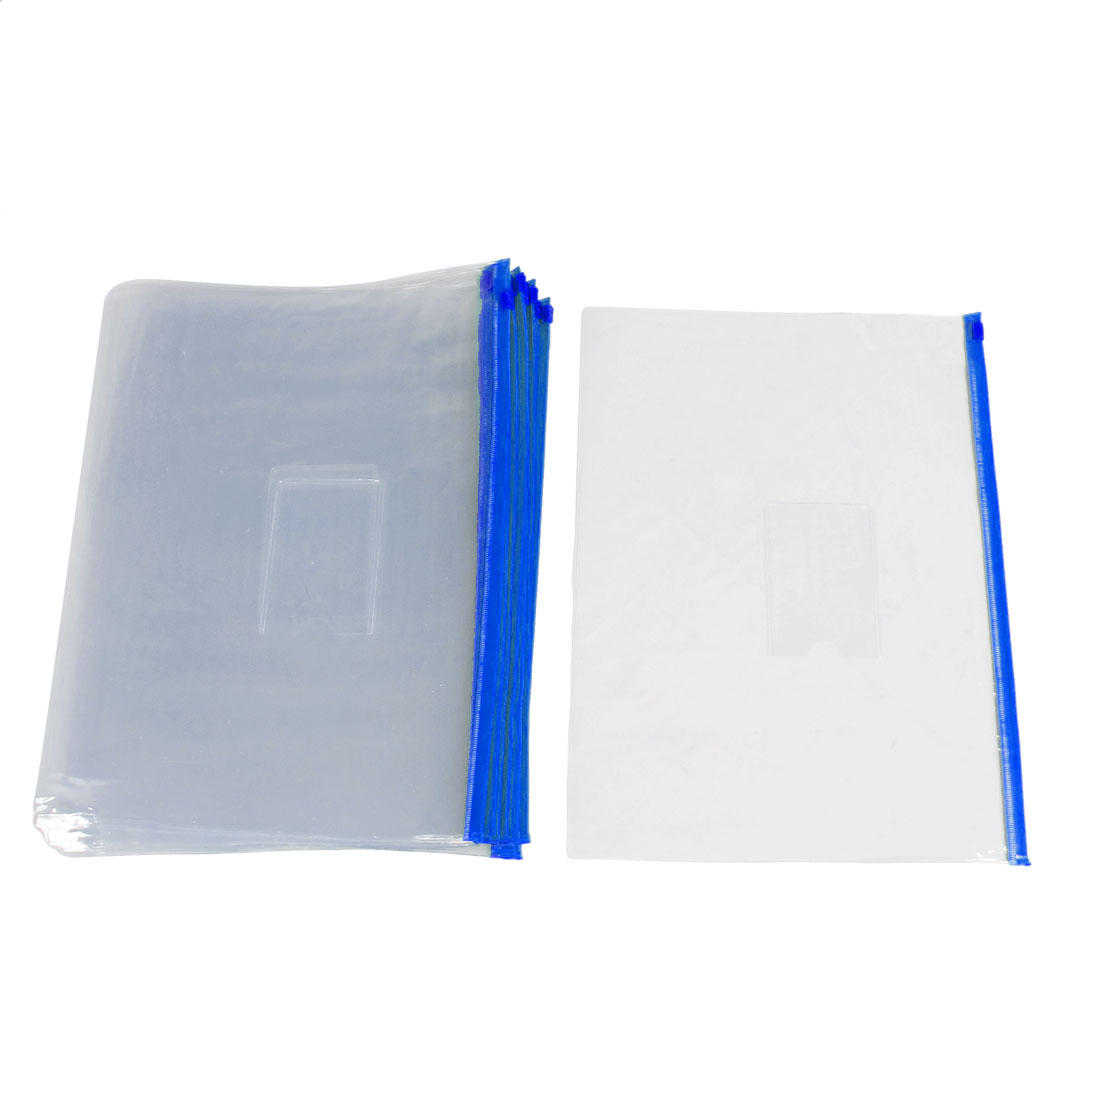 20 Pcs Blue Clear Size A5 Paper Slider Zip Lock Closure Folders Files Bags